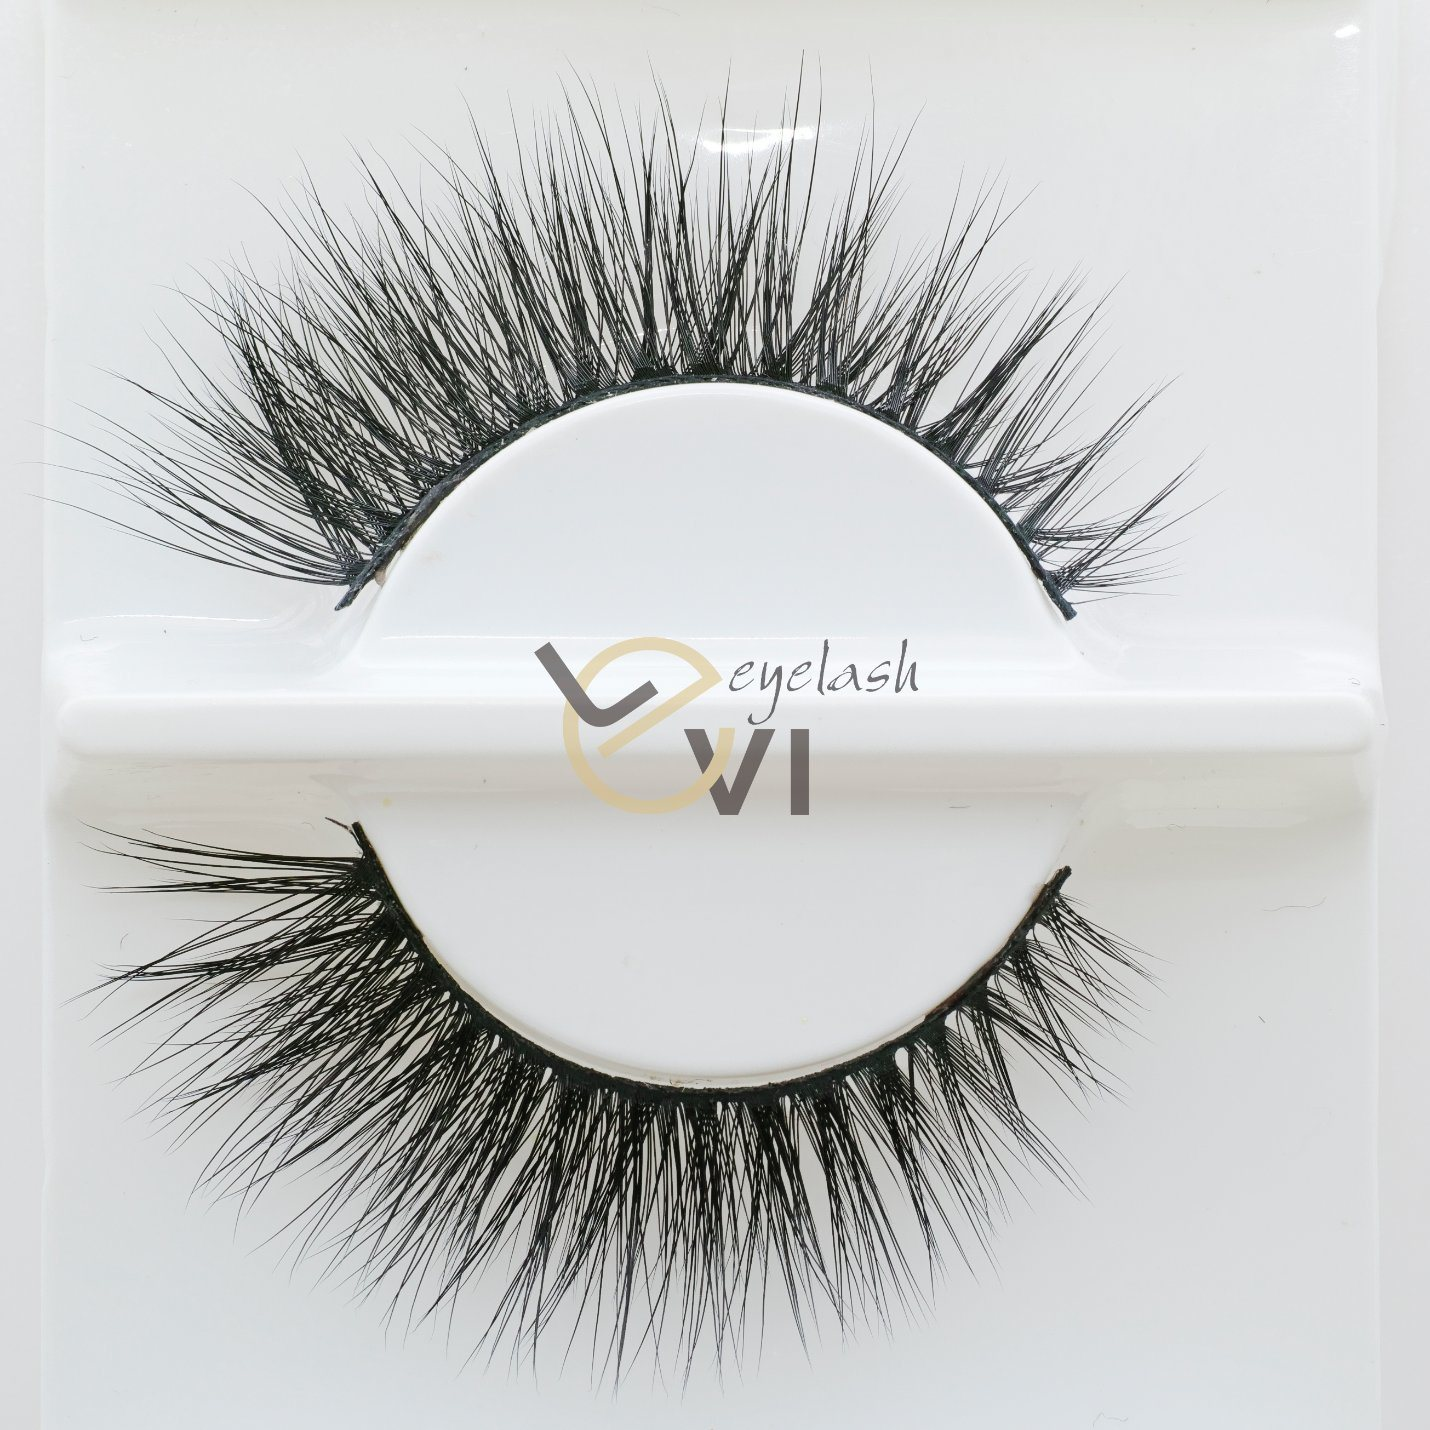 19a5ee6a437 China Lfm-044 Super Soft OEM Private Label 3D Layered Volume Eyelashes Faux Mink  Eyelash Strip False Mink Eyes Lashes False Eye Lashes - China Mink ...